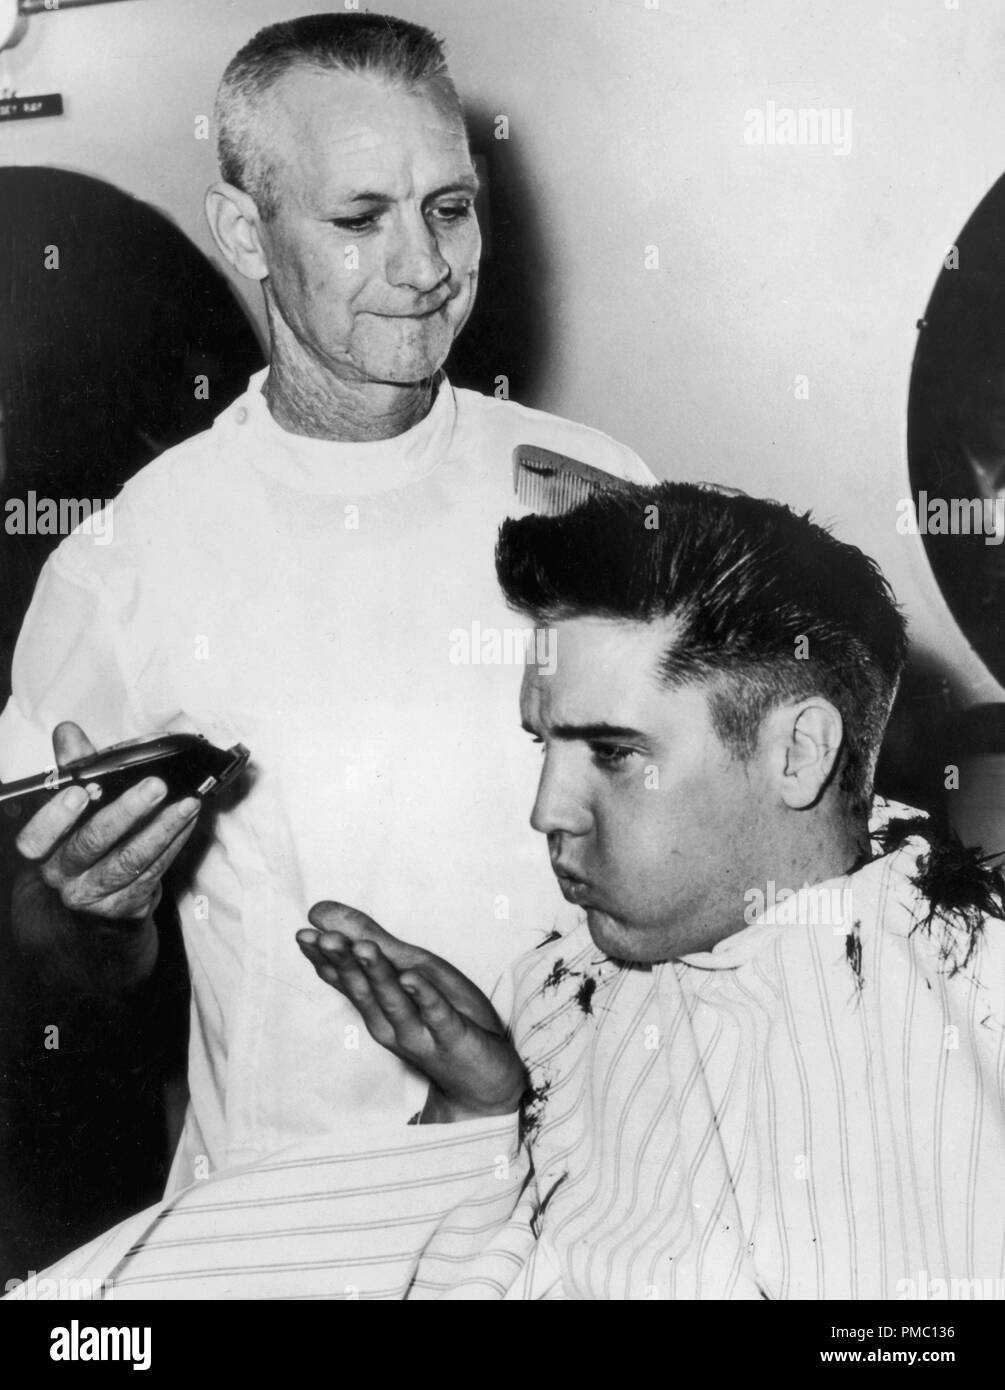 Army recruit, Elvis Presley, blows hair clippings from his hand as he sits for a haircut from an Army barber, in Fort Chaffee, Arkansas, circa 1958  File Reference # 33595_100THA - Stock Image